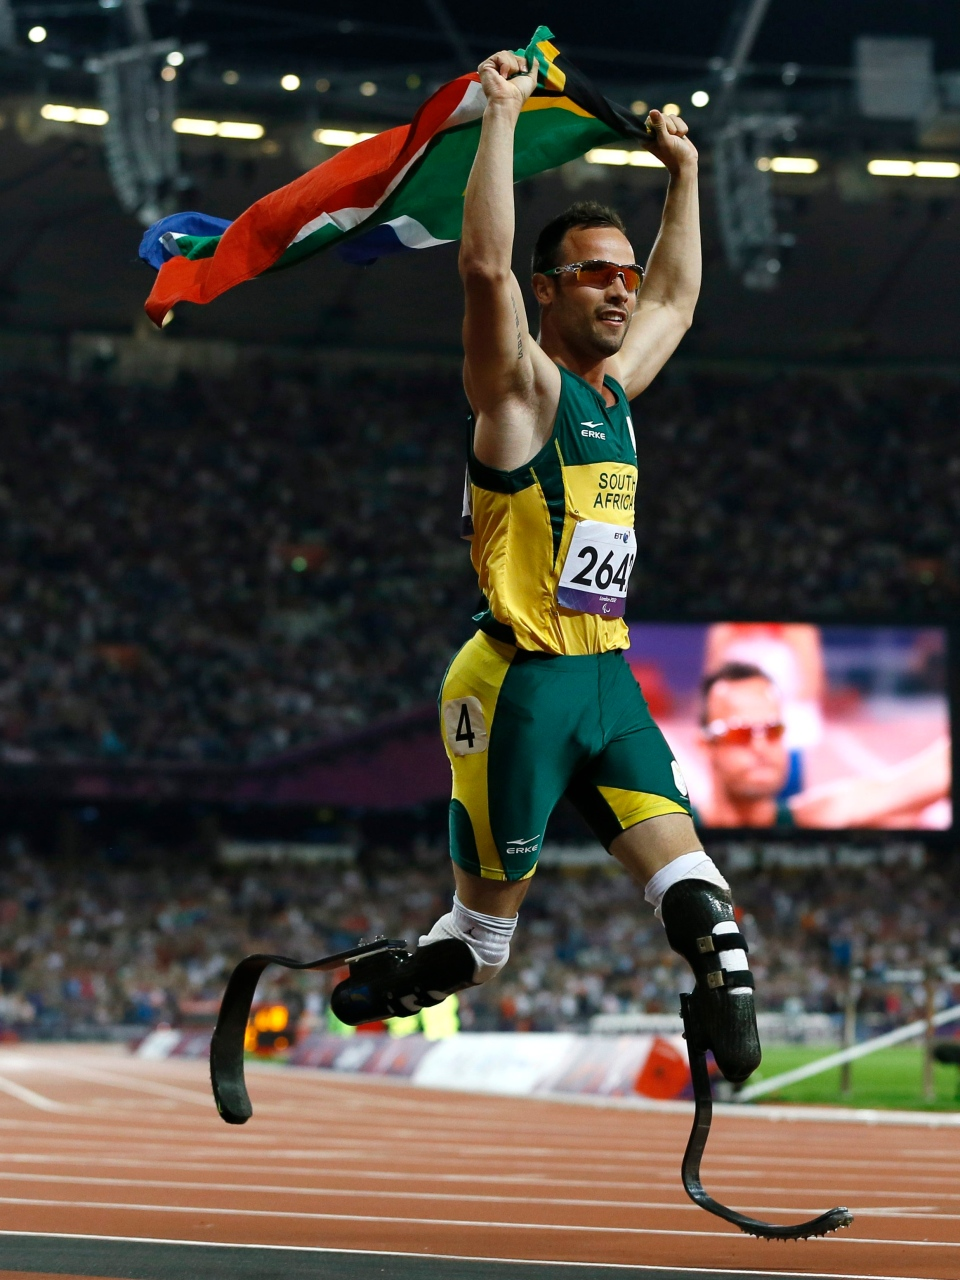 South Africa's Oscar Pistorius celebrates winning gold in the men's 400-metre T44 final at the 2012 Paralympics, Saturday, Sept. 8, 2012, in London. (AP / Kirsty Wigglesworth)